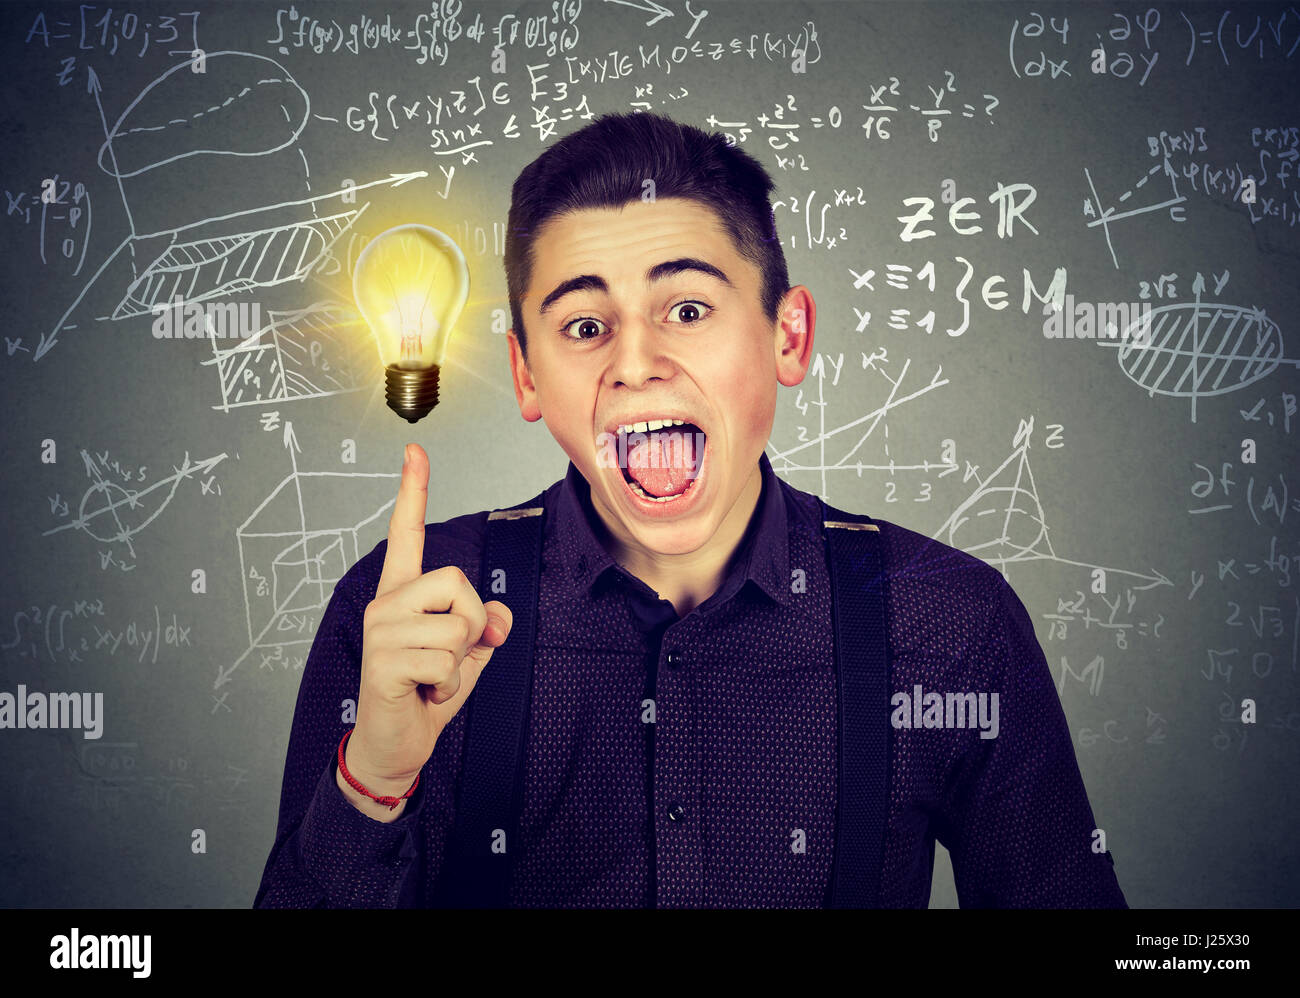 smart student with bright idea light bulb and high school maths and science formulas on blackboard background - Stock Image